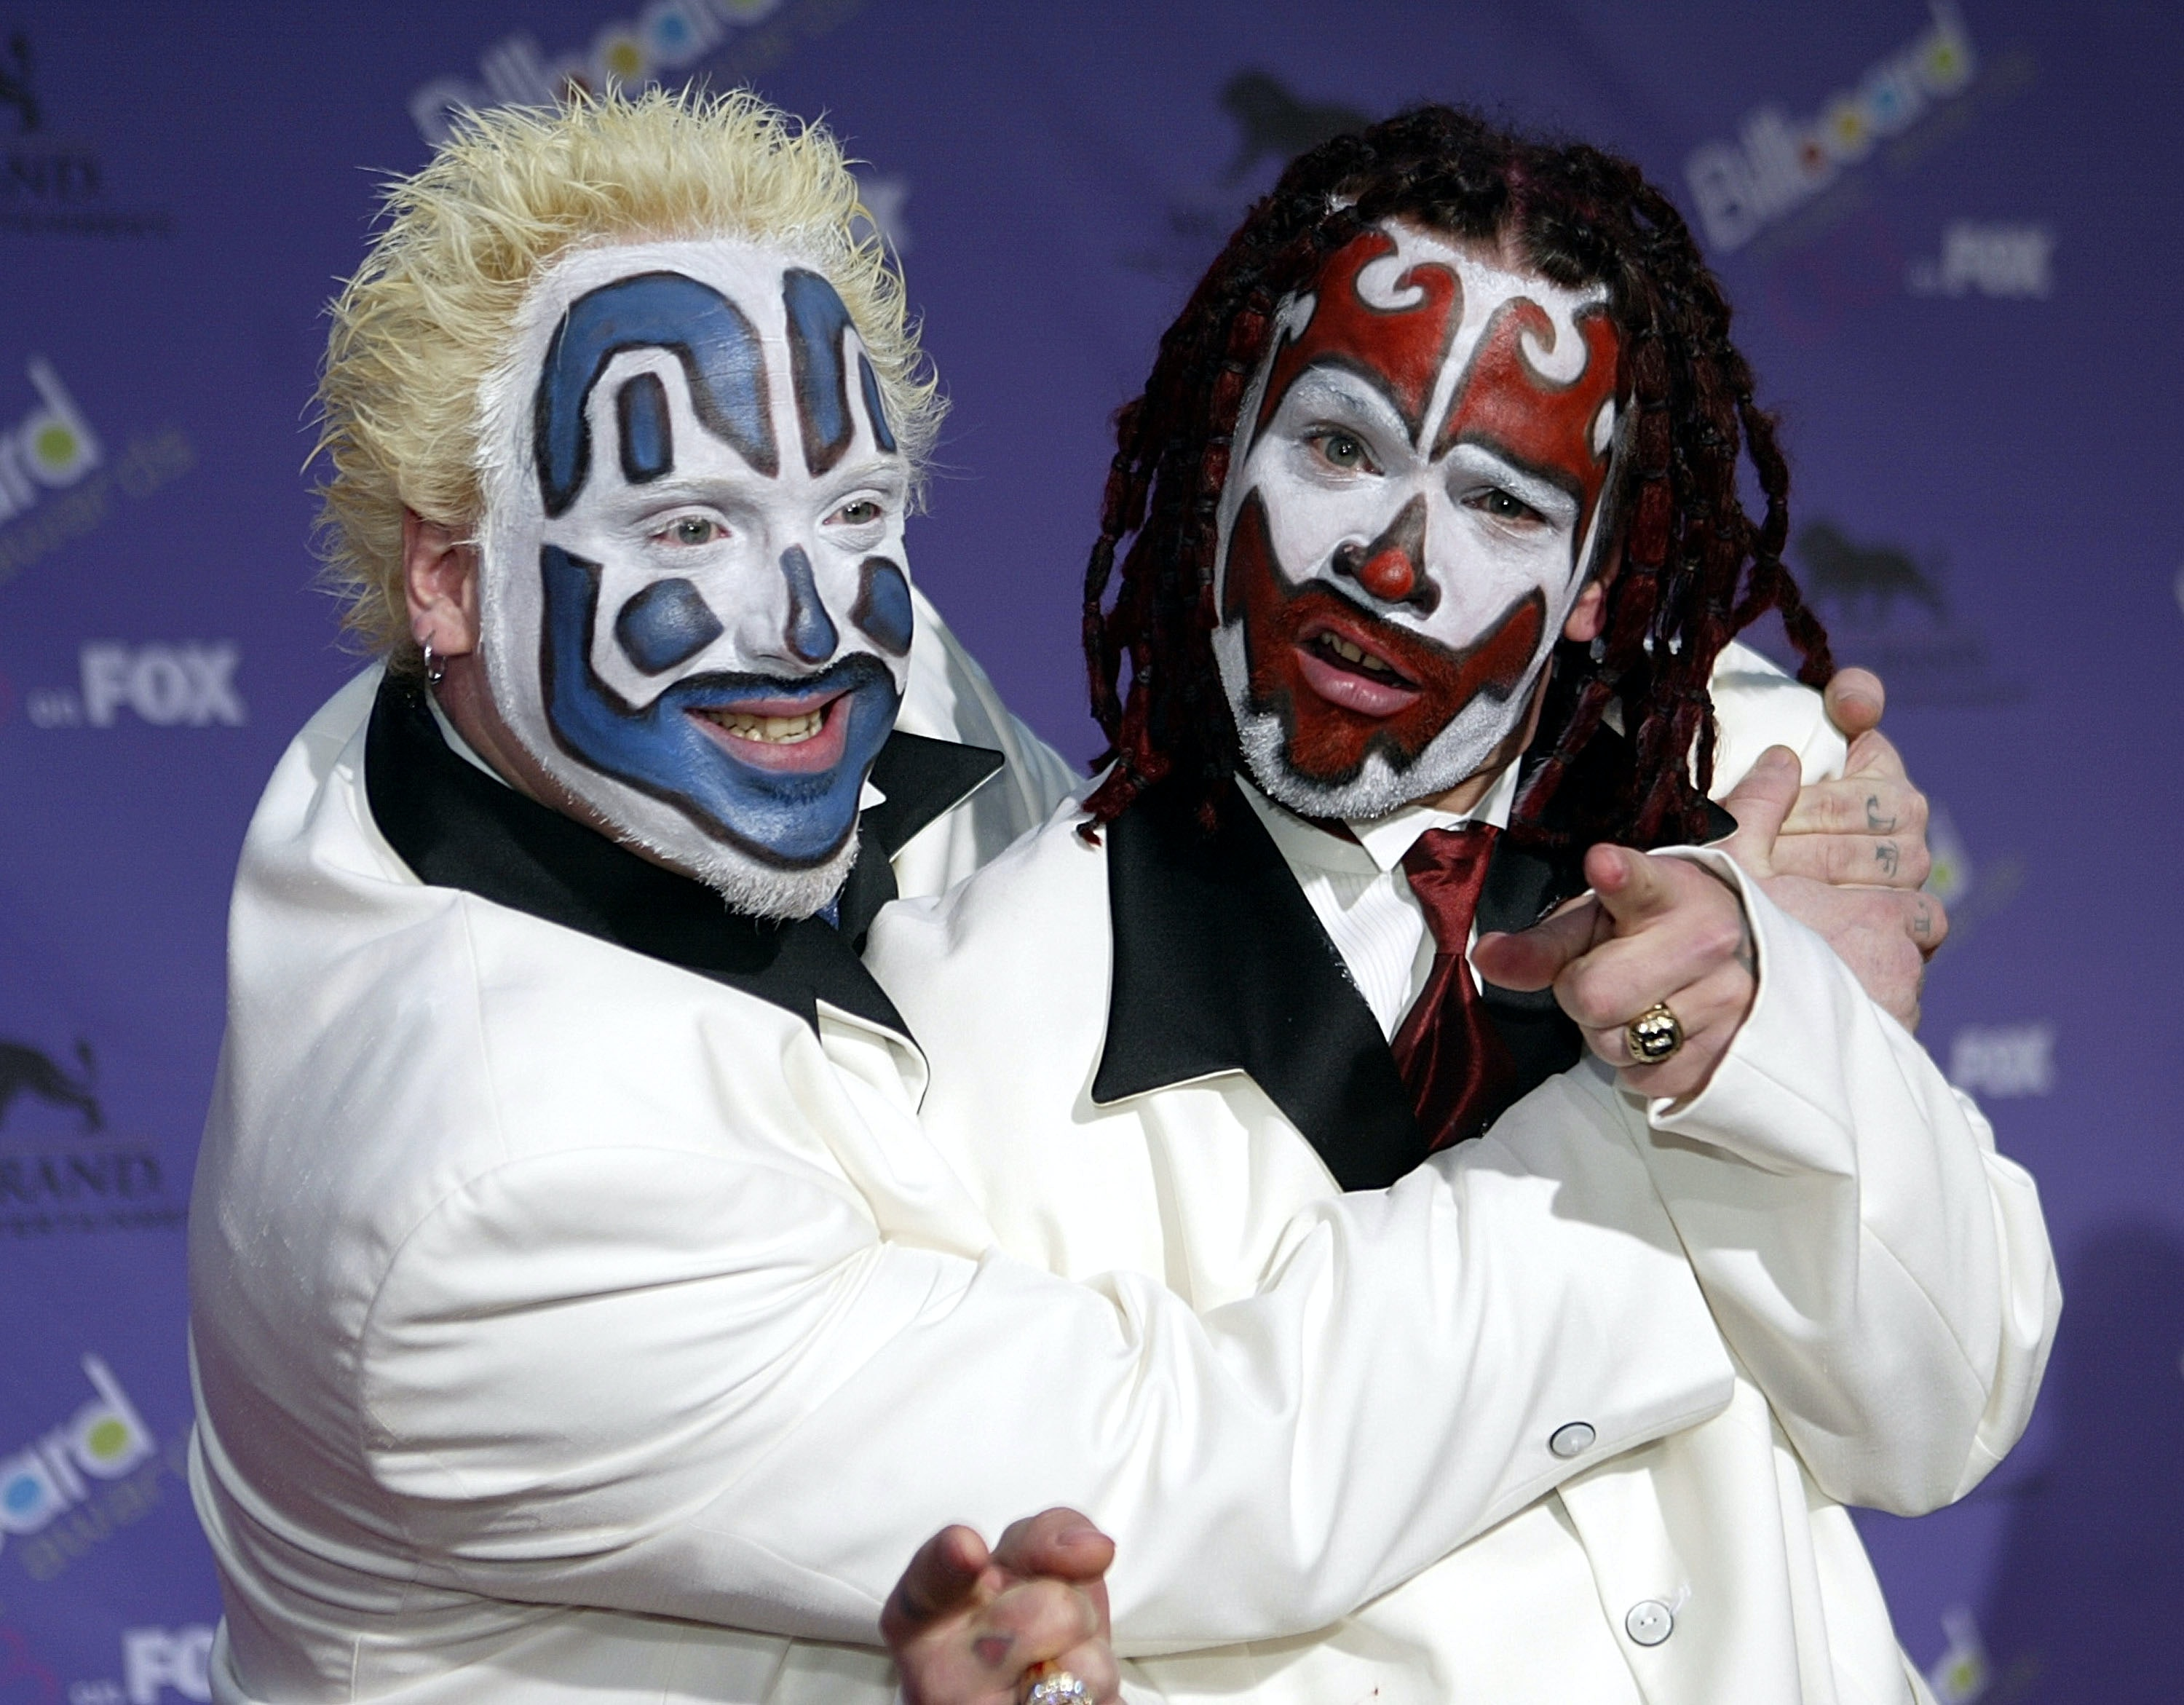 Juggalo, Pro-Trump And Anti-Trump Groups To Converge In DC Saturday